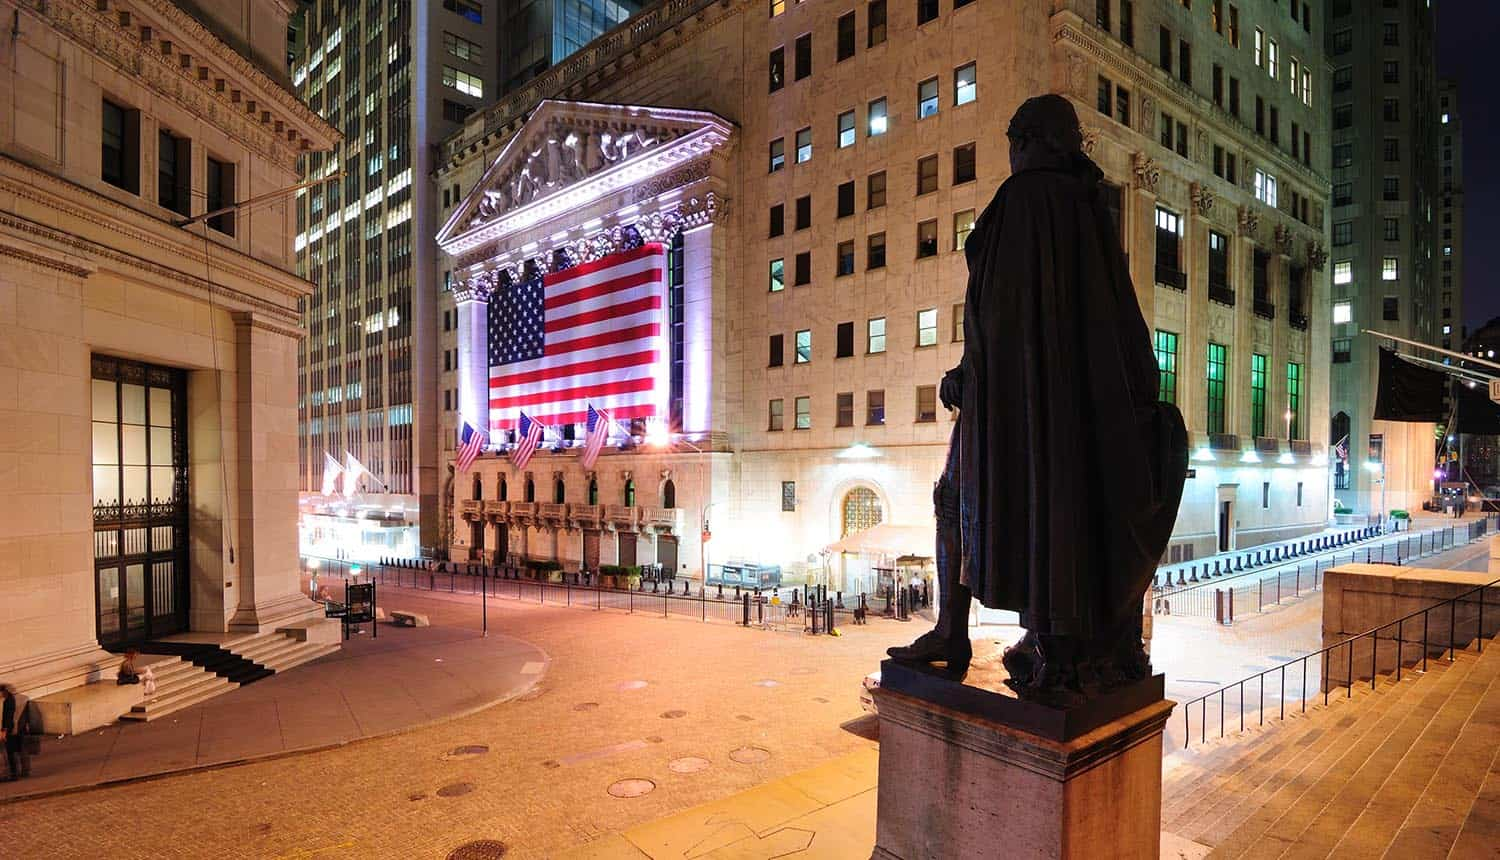 Intersection of Broad Street and Wall Street showing the George Washington Statue overlooking the New York Stock Exchange